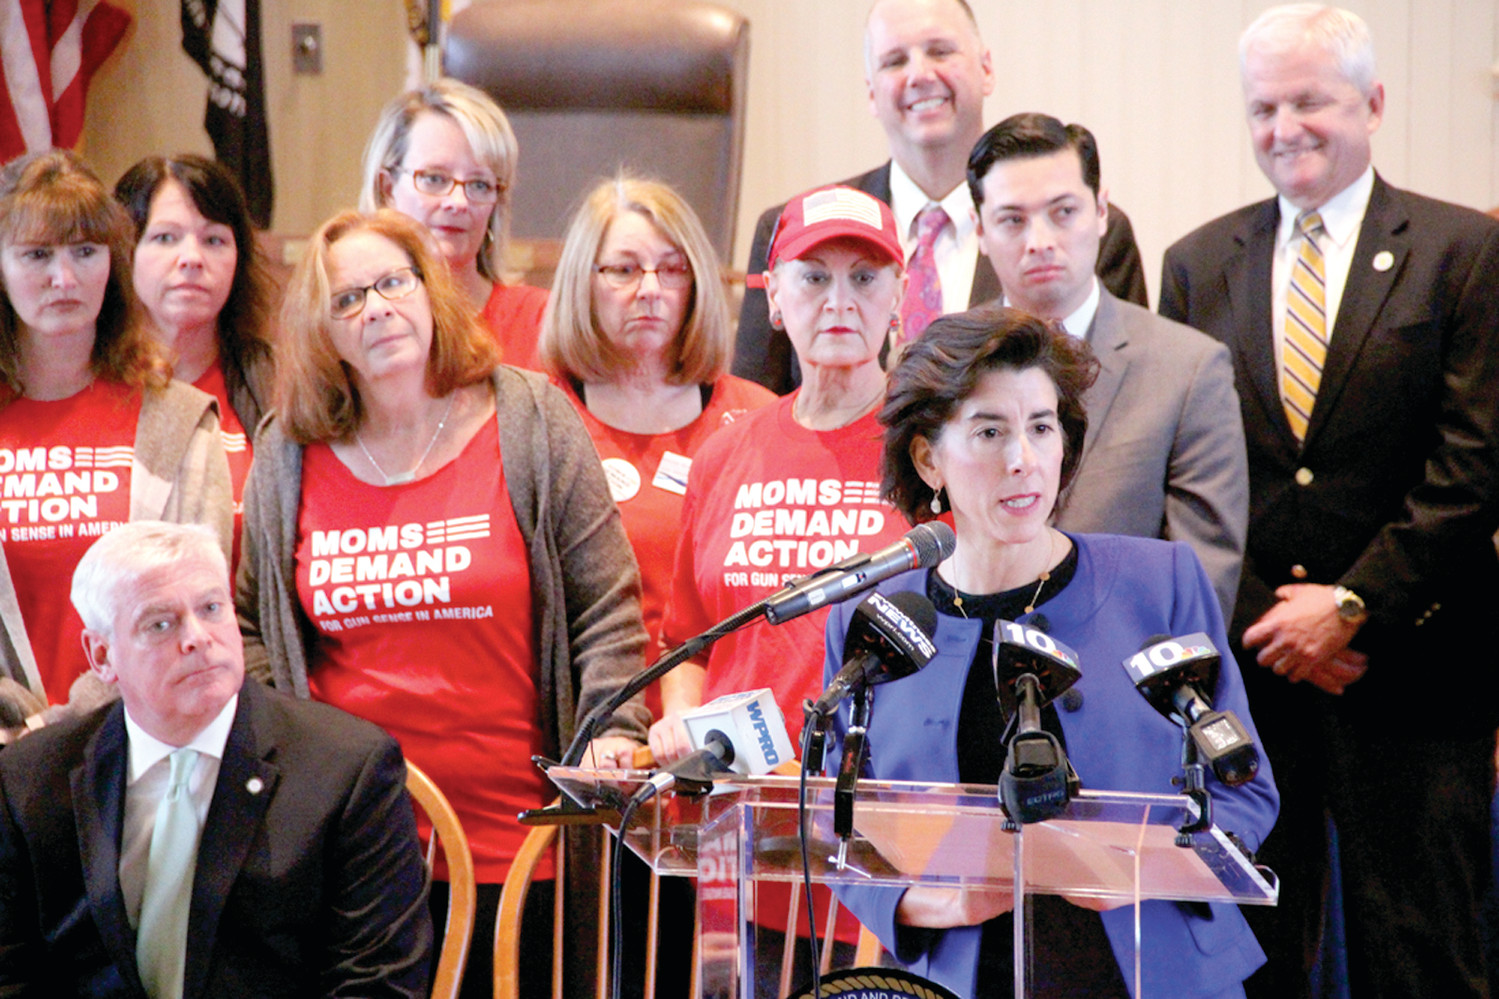 PREVENTING TRAGEDIES: Governor Gina Raimondo, along with state law enforcement and local municipal leaders declared the executive order establishing Red Flag protocols in Rhode Island as a common sense measure that will prevent tragedies by way of gun violence.